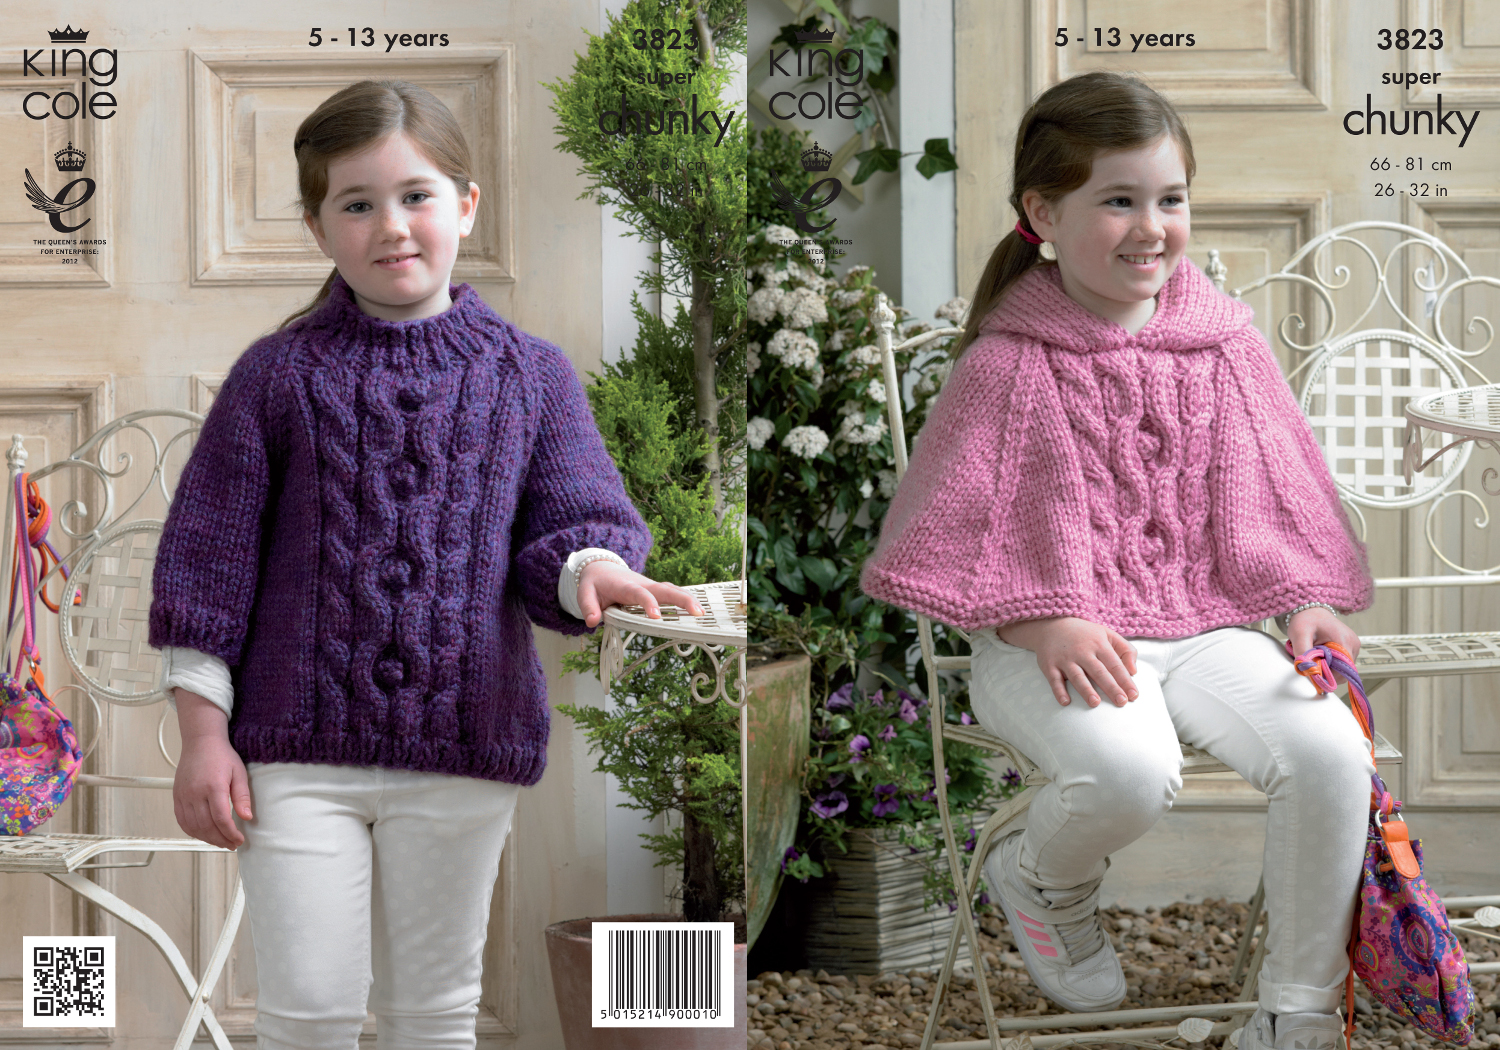 King cole girls super chunky knitting pattern cable knit hooded king cole girls super chunky knitting pattern cable knit hooded cape jumper 3823 bankloansurffo Image collections